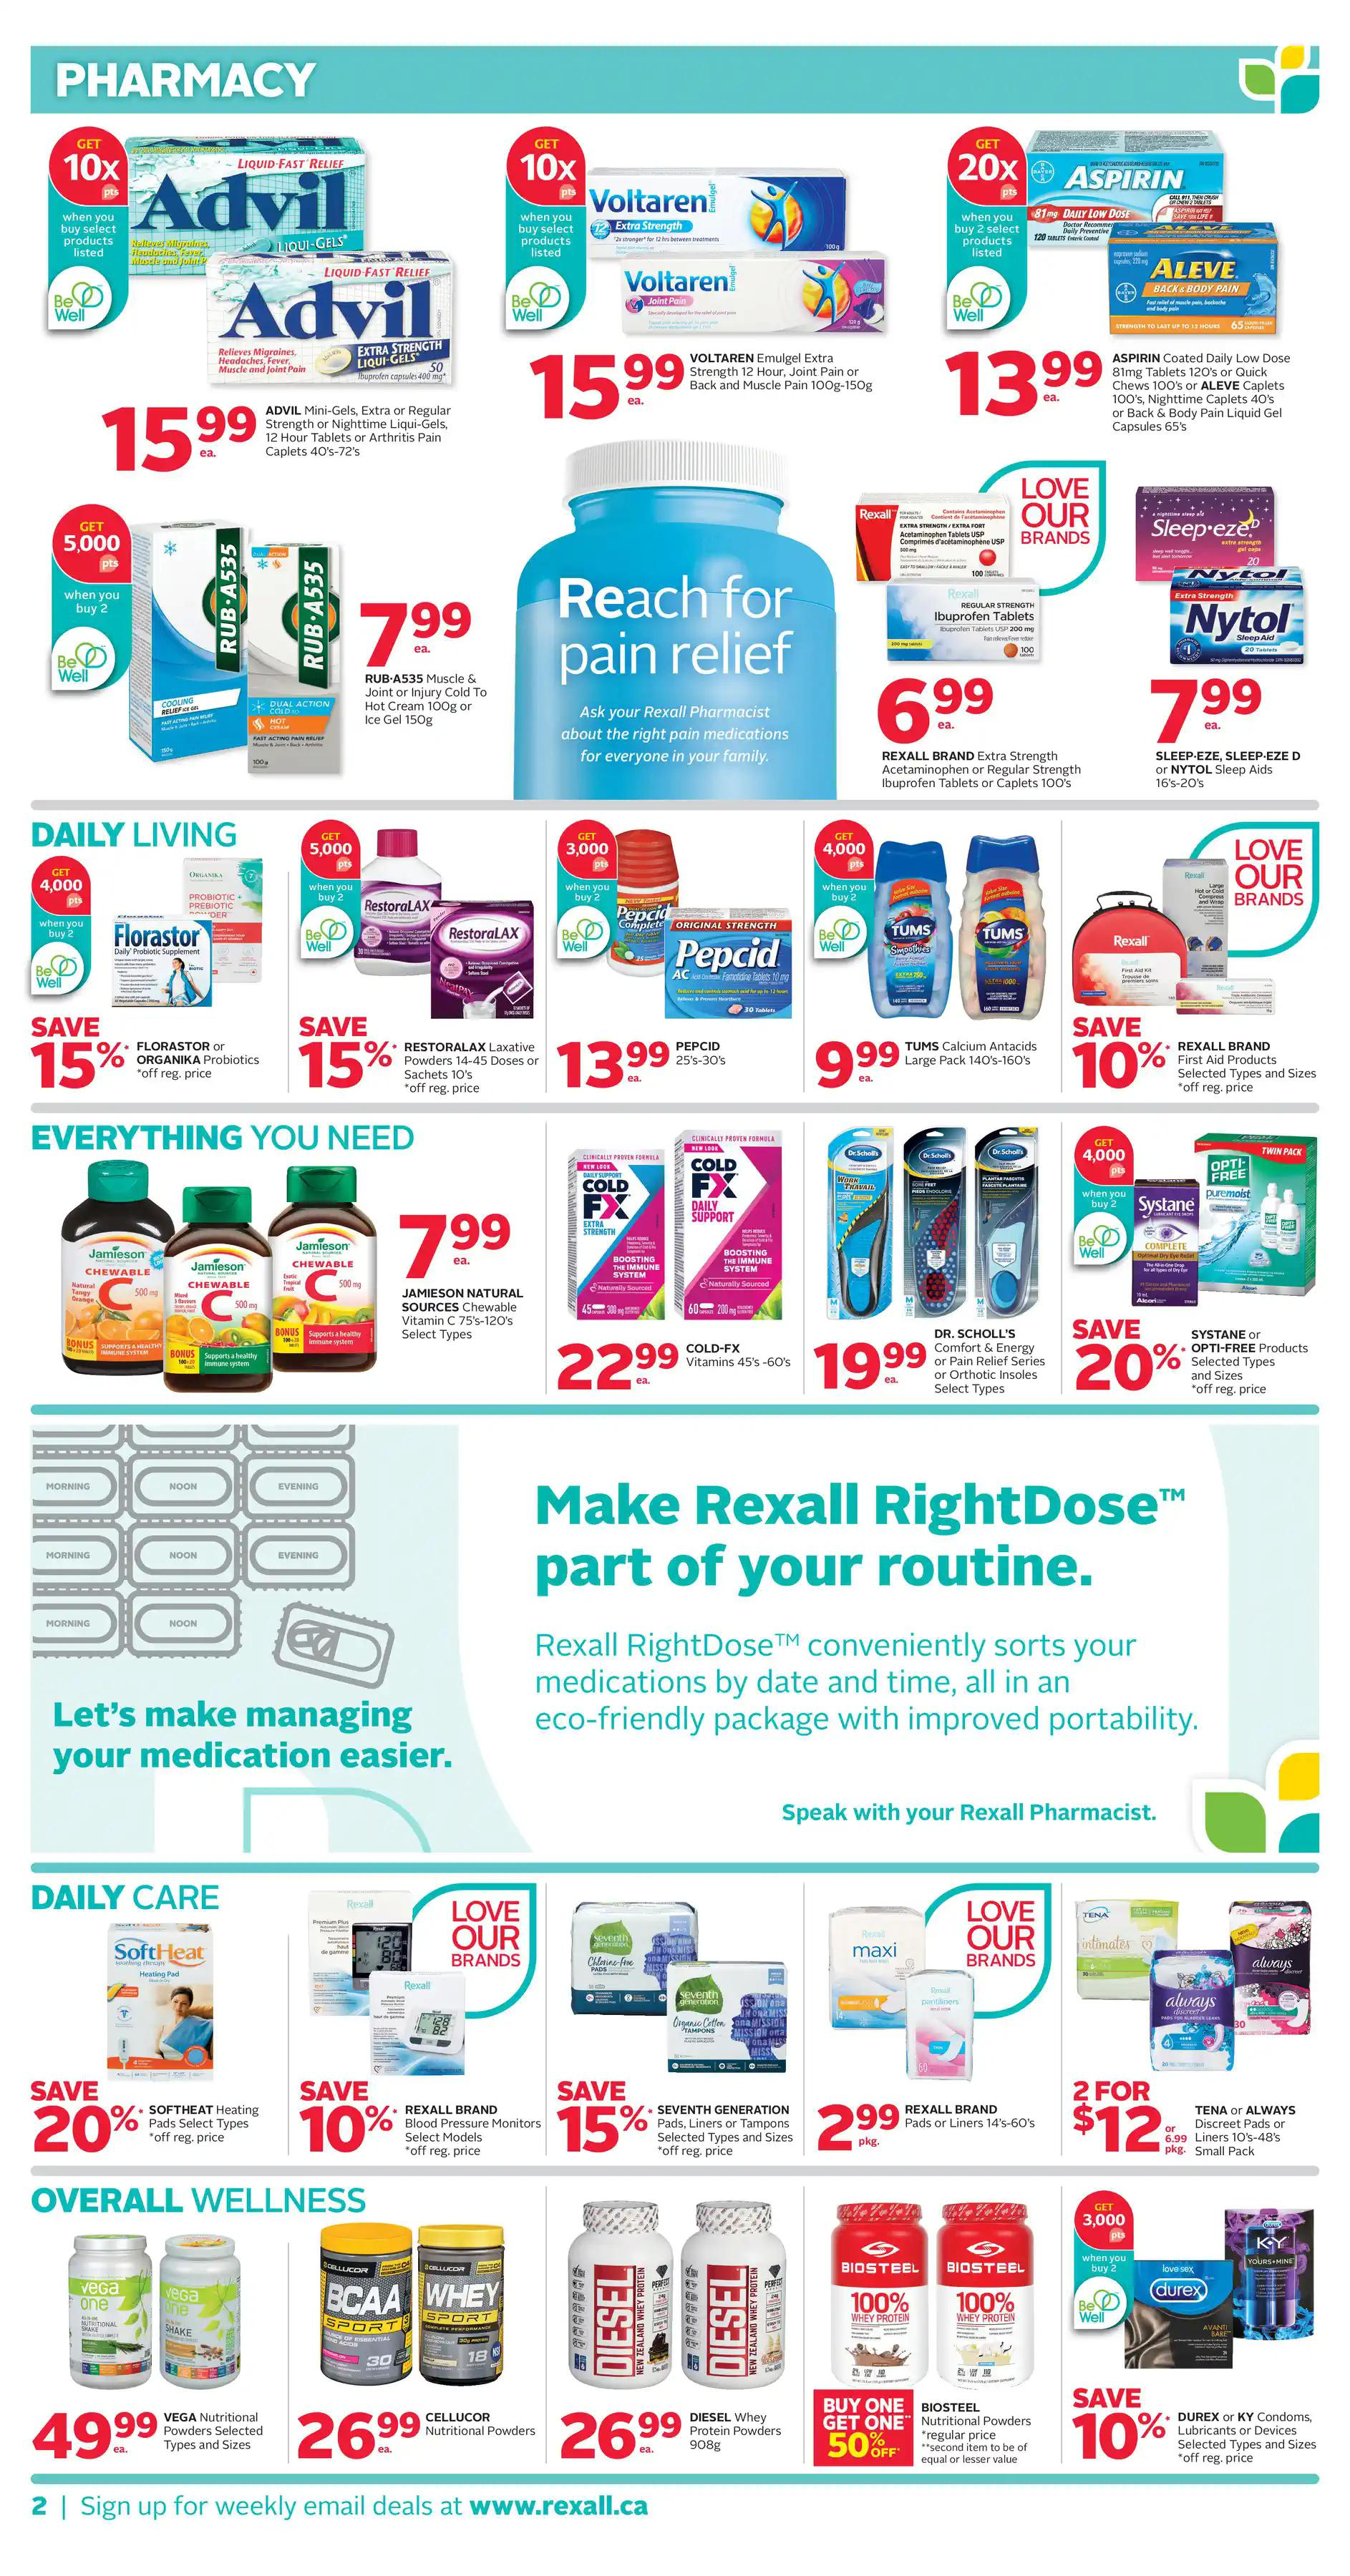 Rexall - Weekly Flyer Specials - Page 4